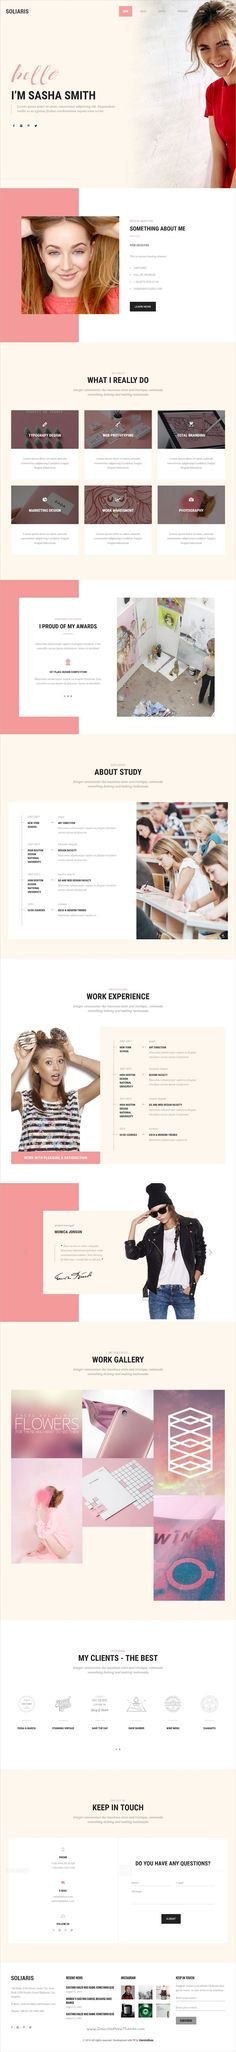 Soliaris is beautiful multipurpose responsive #WordPress theme for digital #agency, freelancer, app, startup, #business, services, software company websites with 18+ homepage layouts download now➩   https://themeforest.net/item/soliaris-multiconcept-business-wordpress-theme/17600904?ref=Datasata